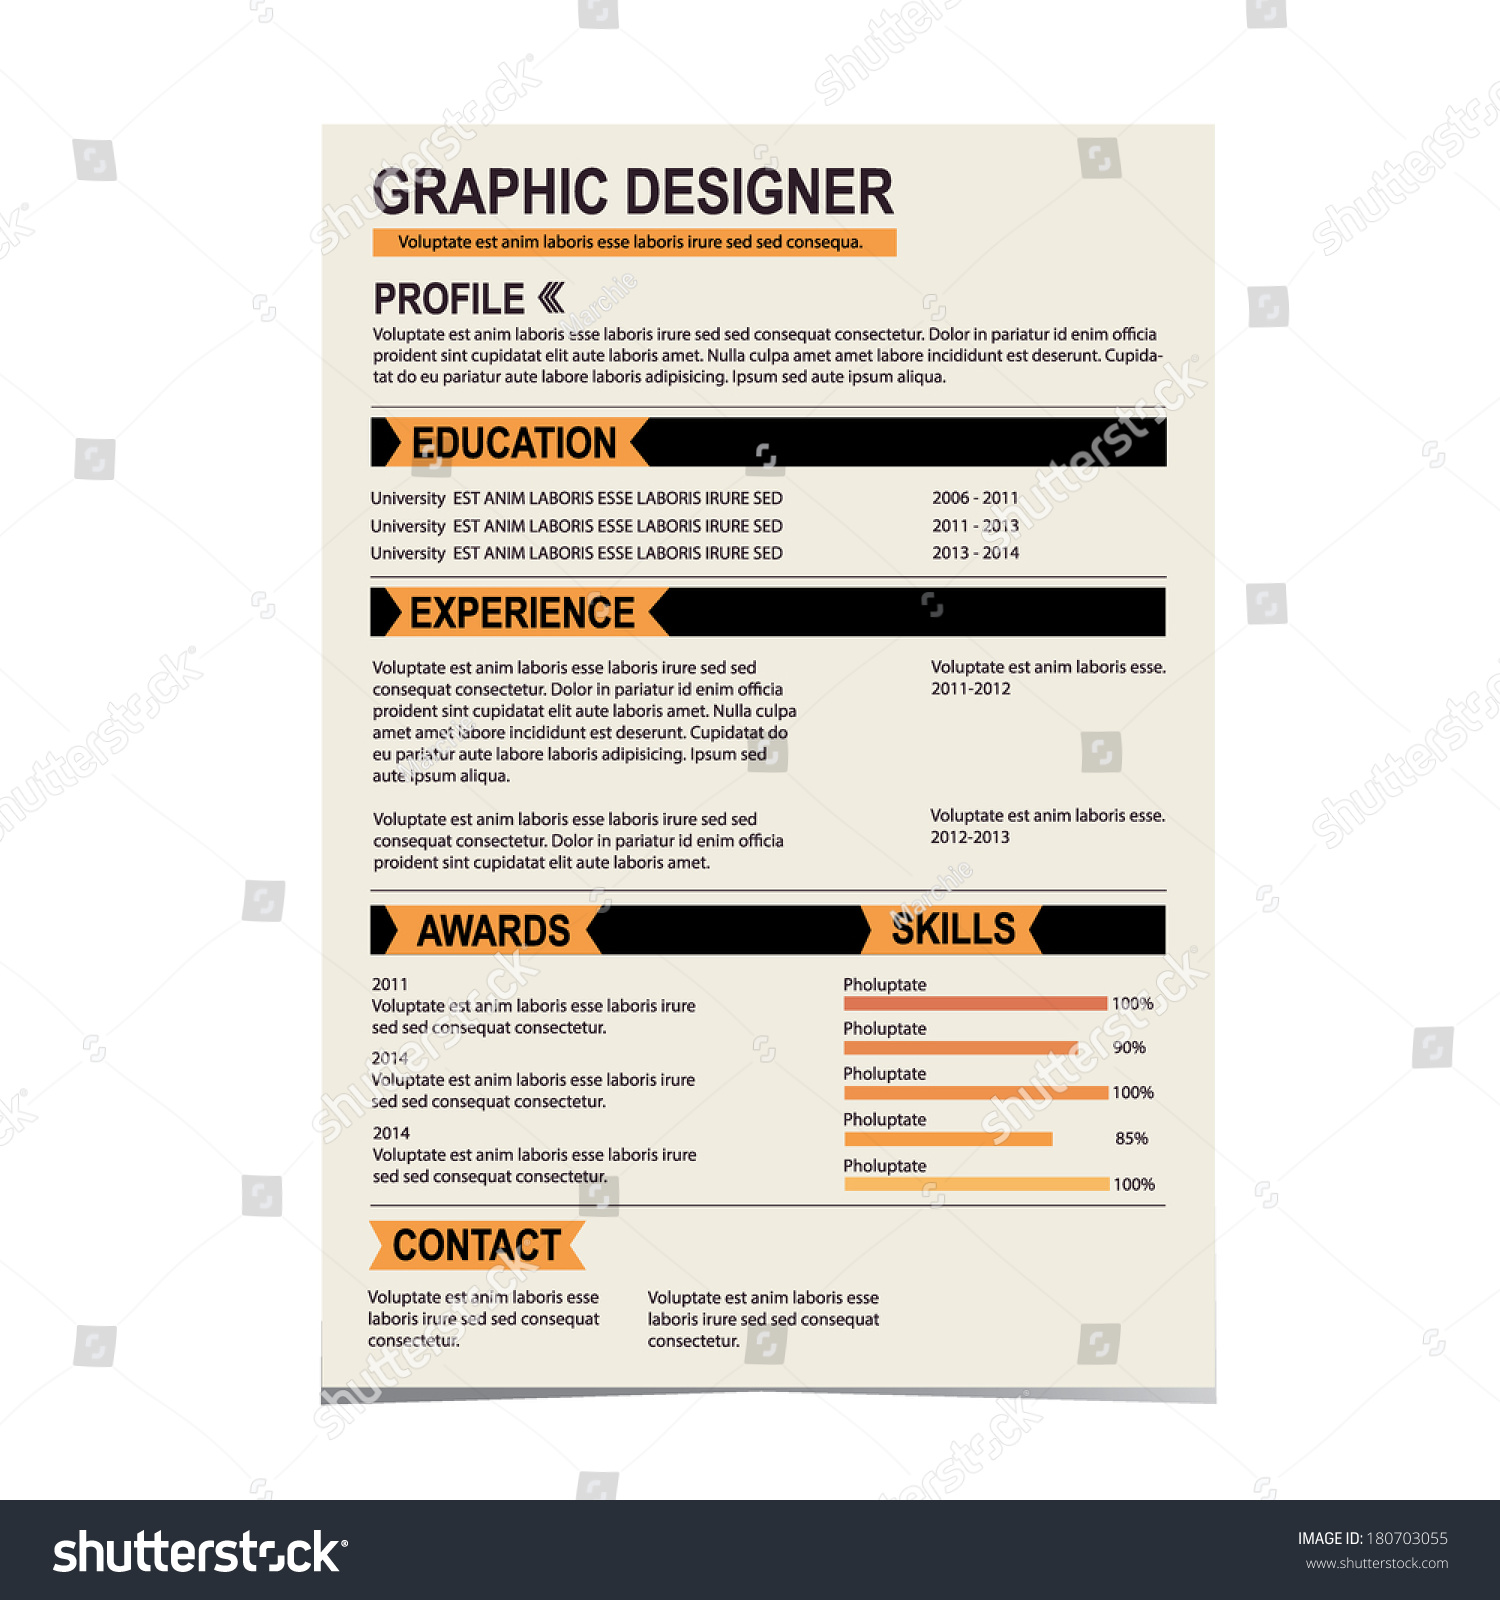 resume template cv creative background vector stock vector resume template cv creative background vector illustration